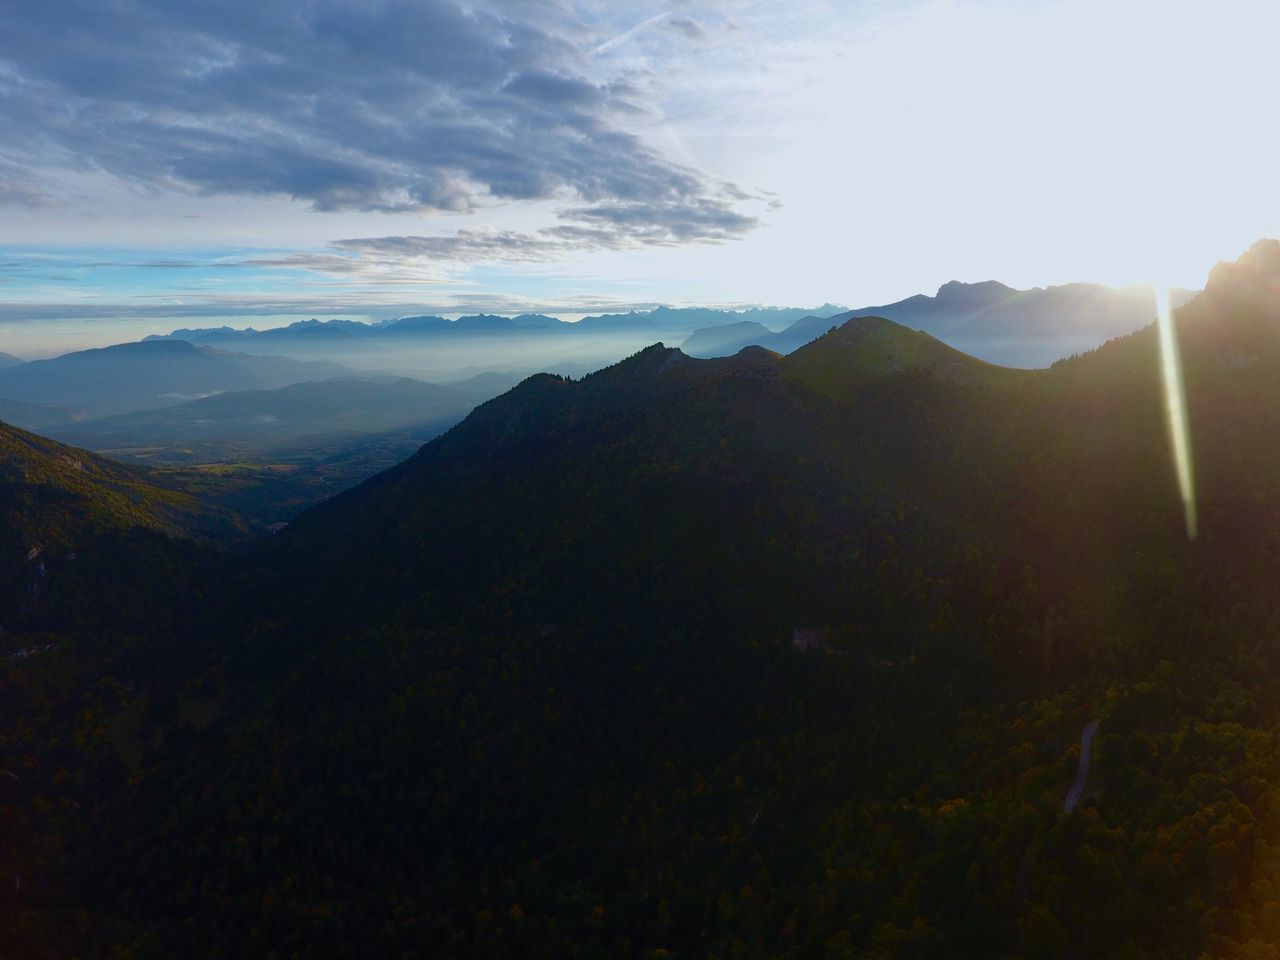 Lost In The Landscape Dji DJI Phantom 4 Dji Phantom Phantom 4 Mountain Beauty In Nature Sky Nature Tranquility Tranquil Scene Scenics Sunlight Landscape Mountain Range No People Day Outdoors Drone  Dronephotography Drone View